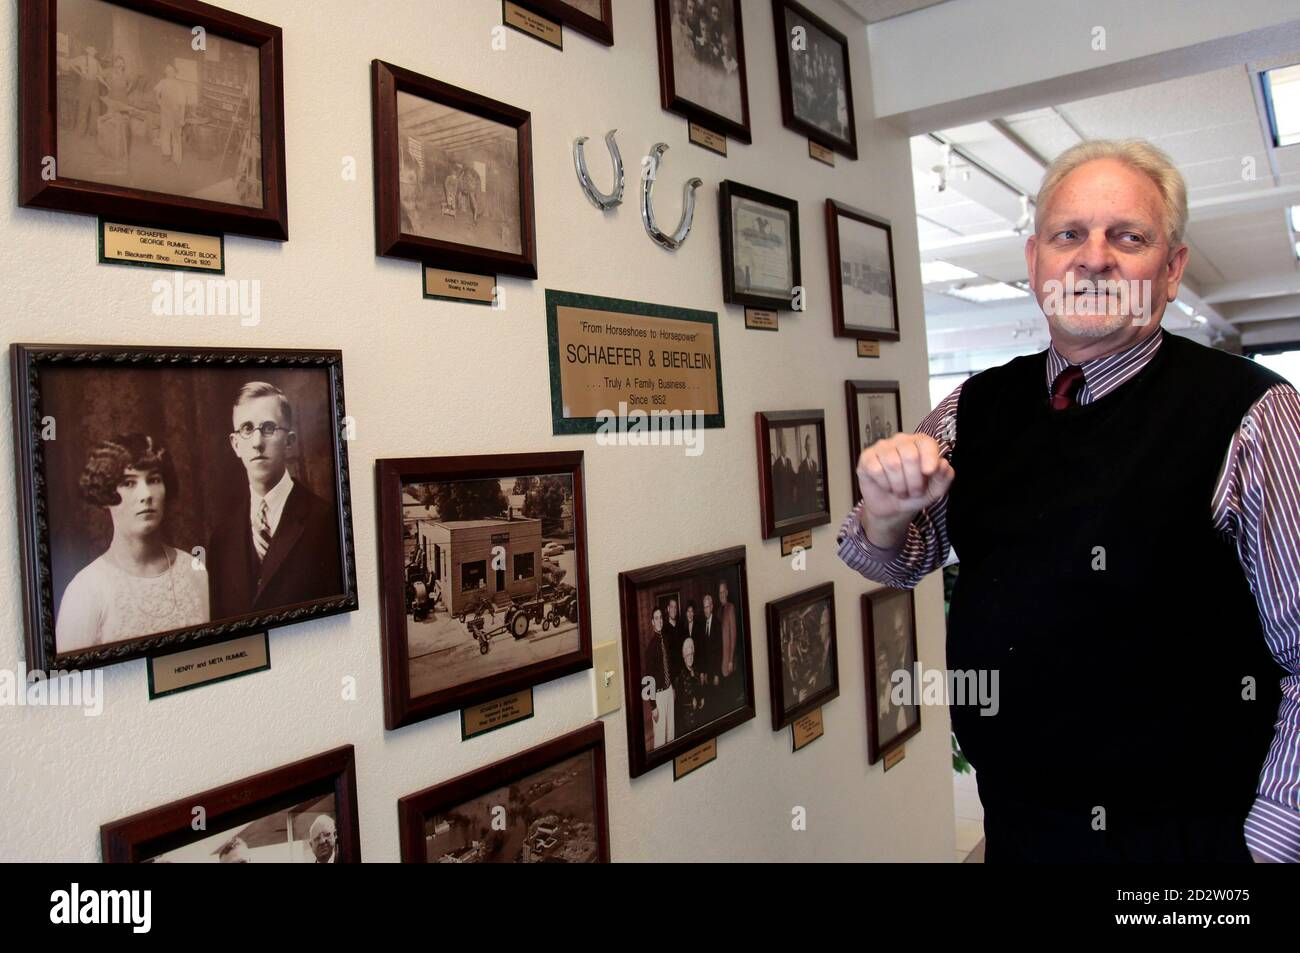 frankenmuth mi high resolution stock photography and images alamy https www alamy com randy bierlein shows the historic family photos of his family business founded in frankenmuth michigan by his german immigrant great great grandfather george m schaefer in 1852 founded as a blacksmith shop before becoming frankenmuths first car dealer in 1914 it remains a family owned business as schaefer bierlein chrysler auto dealership picture taken march 20 2009 reutersrebecca cook united states transport business image380406409 html